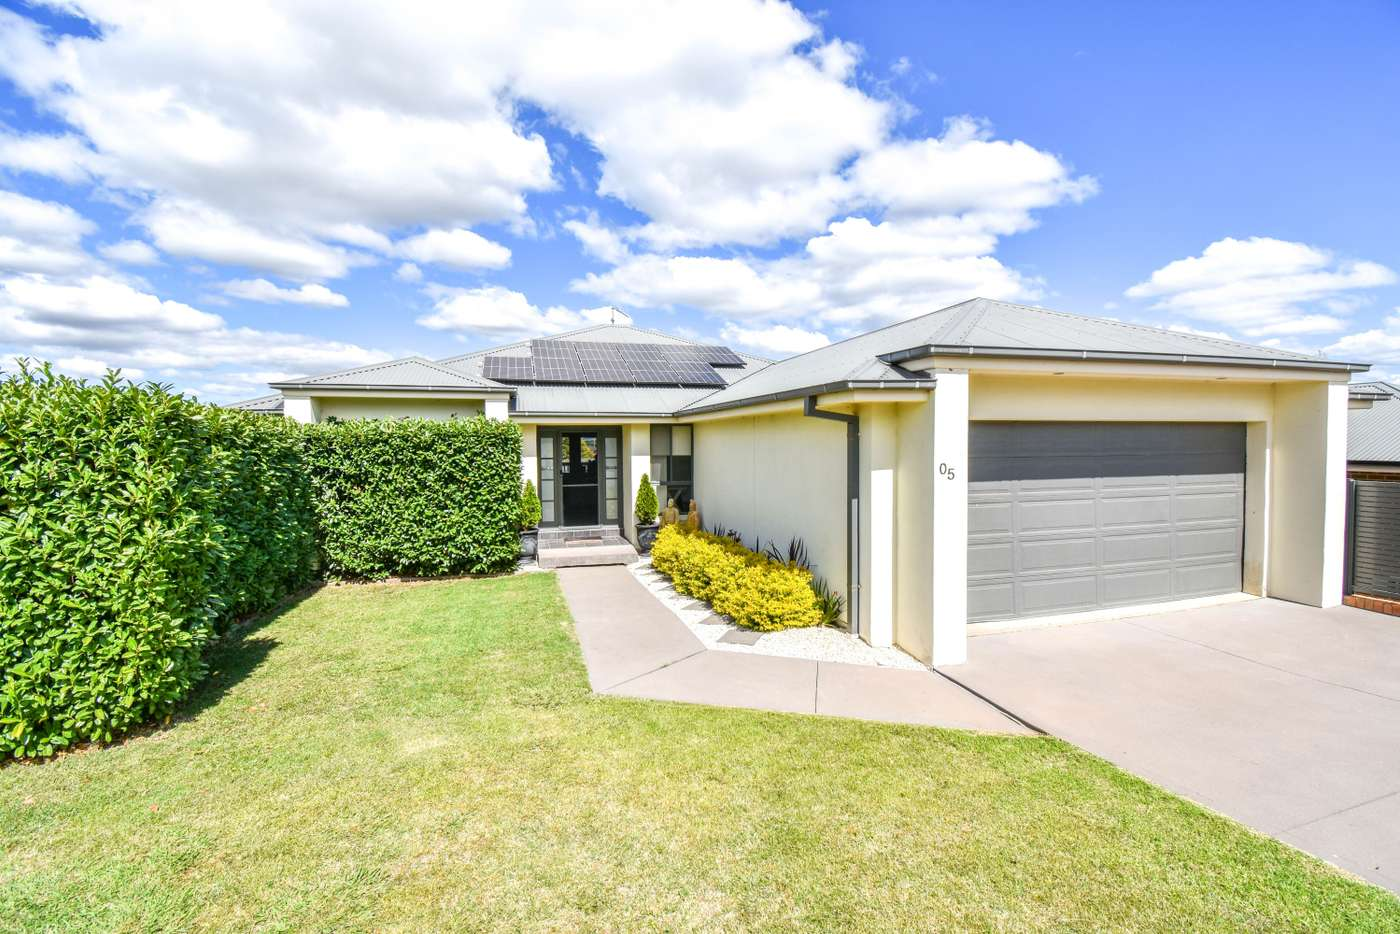 Main view of Homely house listing, 5 Nancarrow Place, Kelso NSW 2795